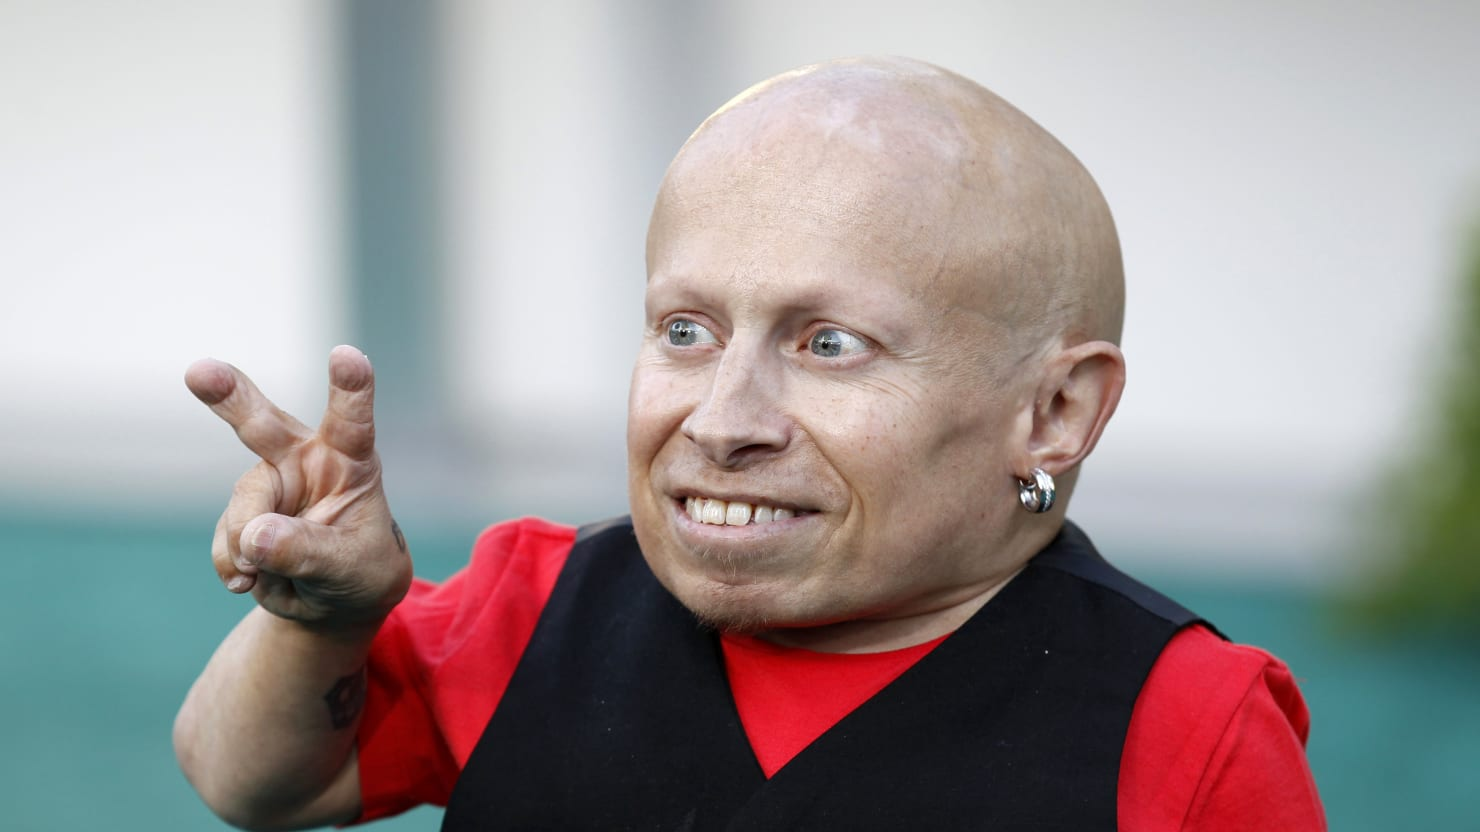 'Austin Powers' Actor Verne Troyer Dies At Age 49